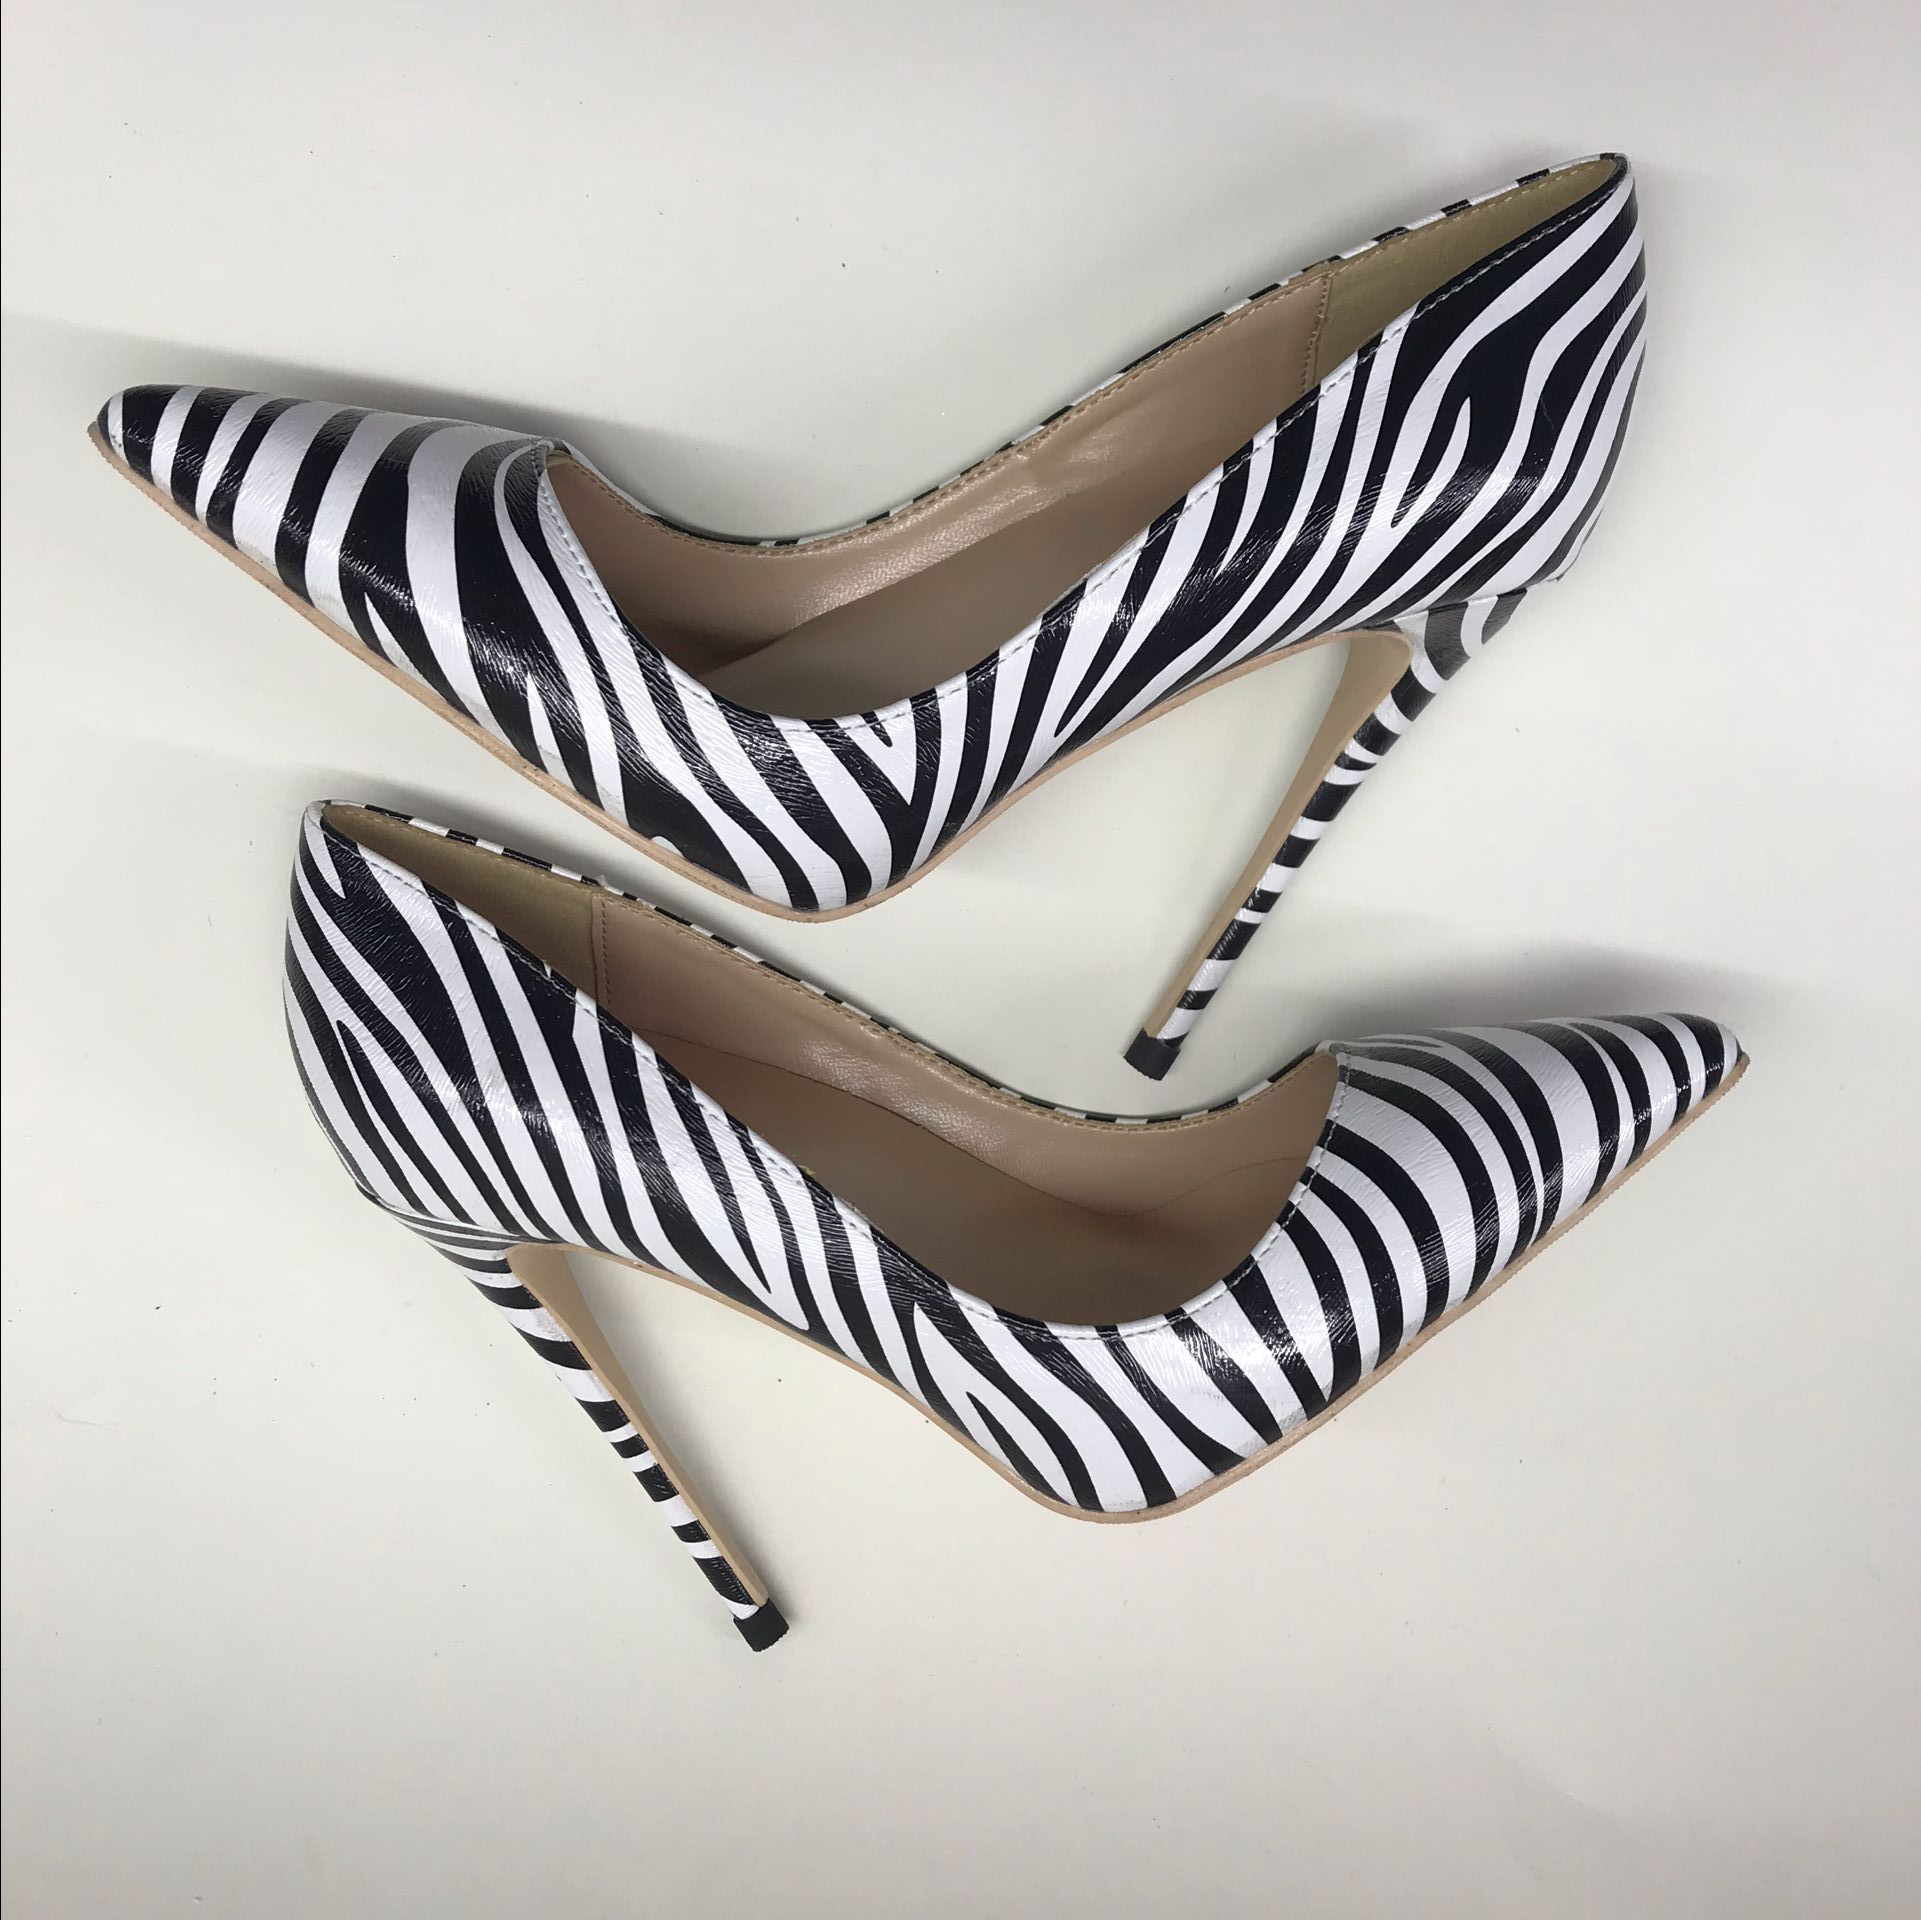 European and American style early autumn new zebra striped horse hair pointed high heel shoes sexy shallow-mouthed womens singlEuropean and American style early autumn new zebra striped horse hair pointed high heel shoes sexy shallow-mouthed womens singl